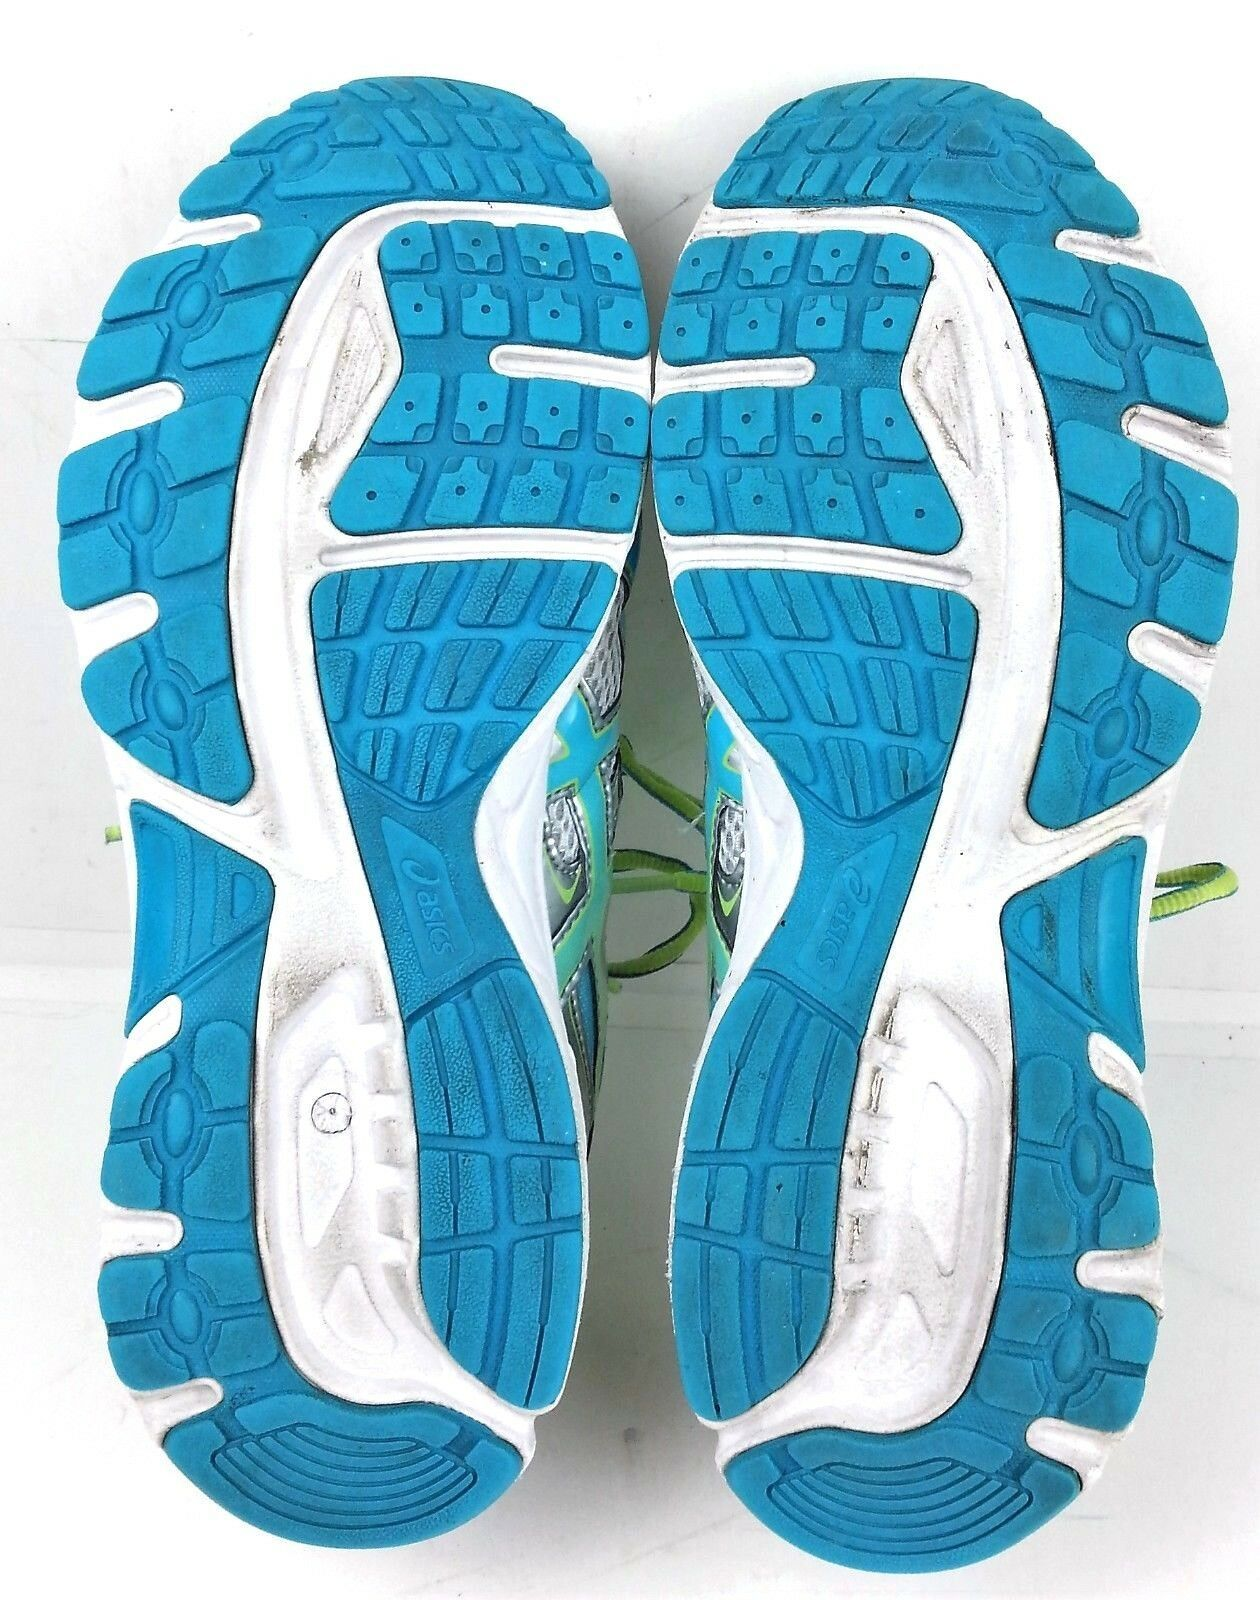 Asics Womens Gel Contend 2 Running Shoes Size 9.5 Sneakers T474N Silver Teal image 8